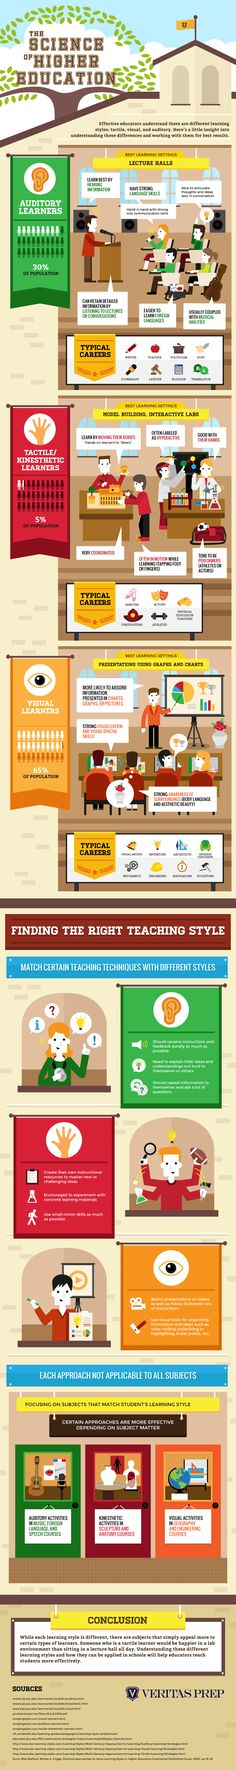 Check out the infographic to find out more about learning styles, and about how teachers can best approzch each learning style!